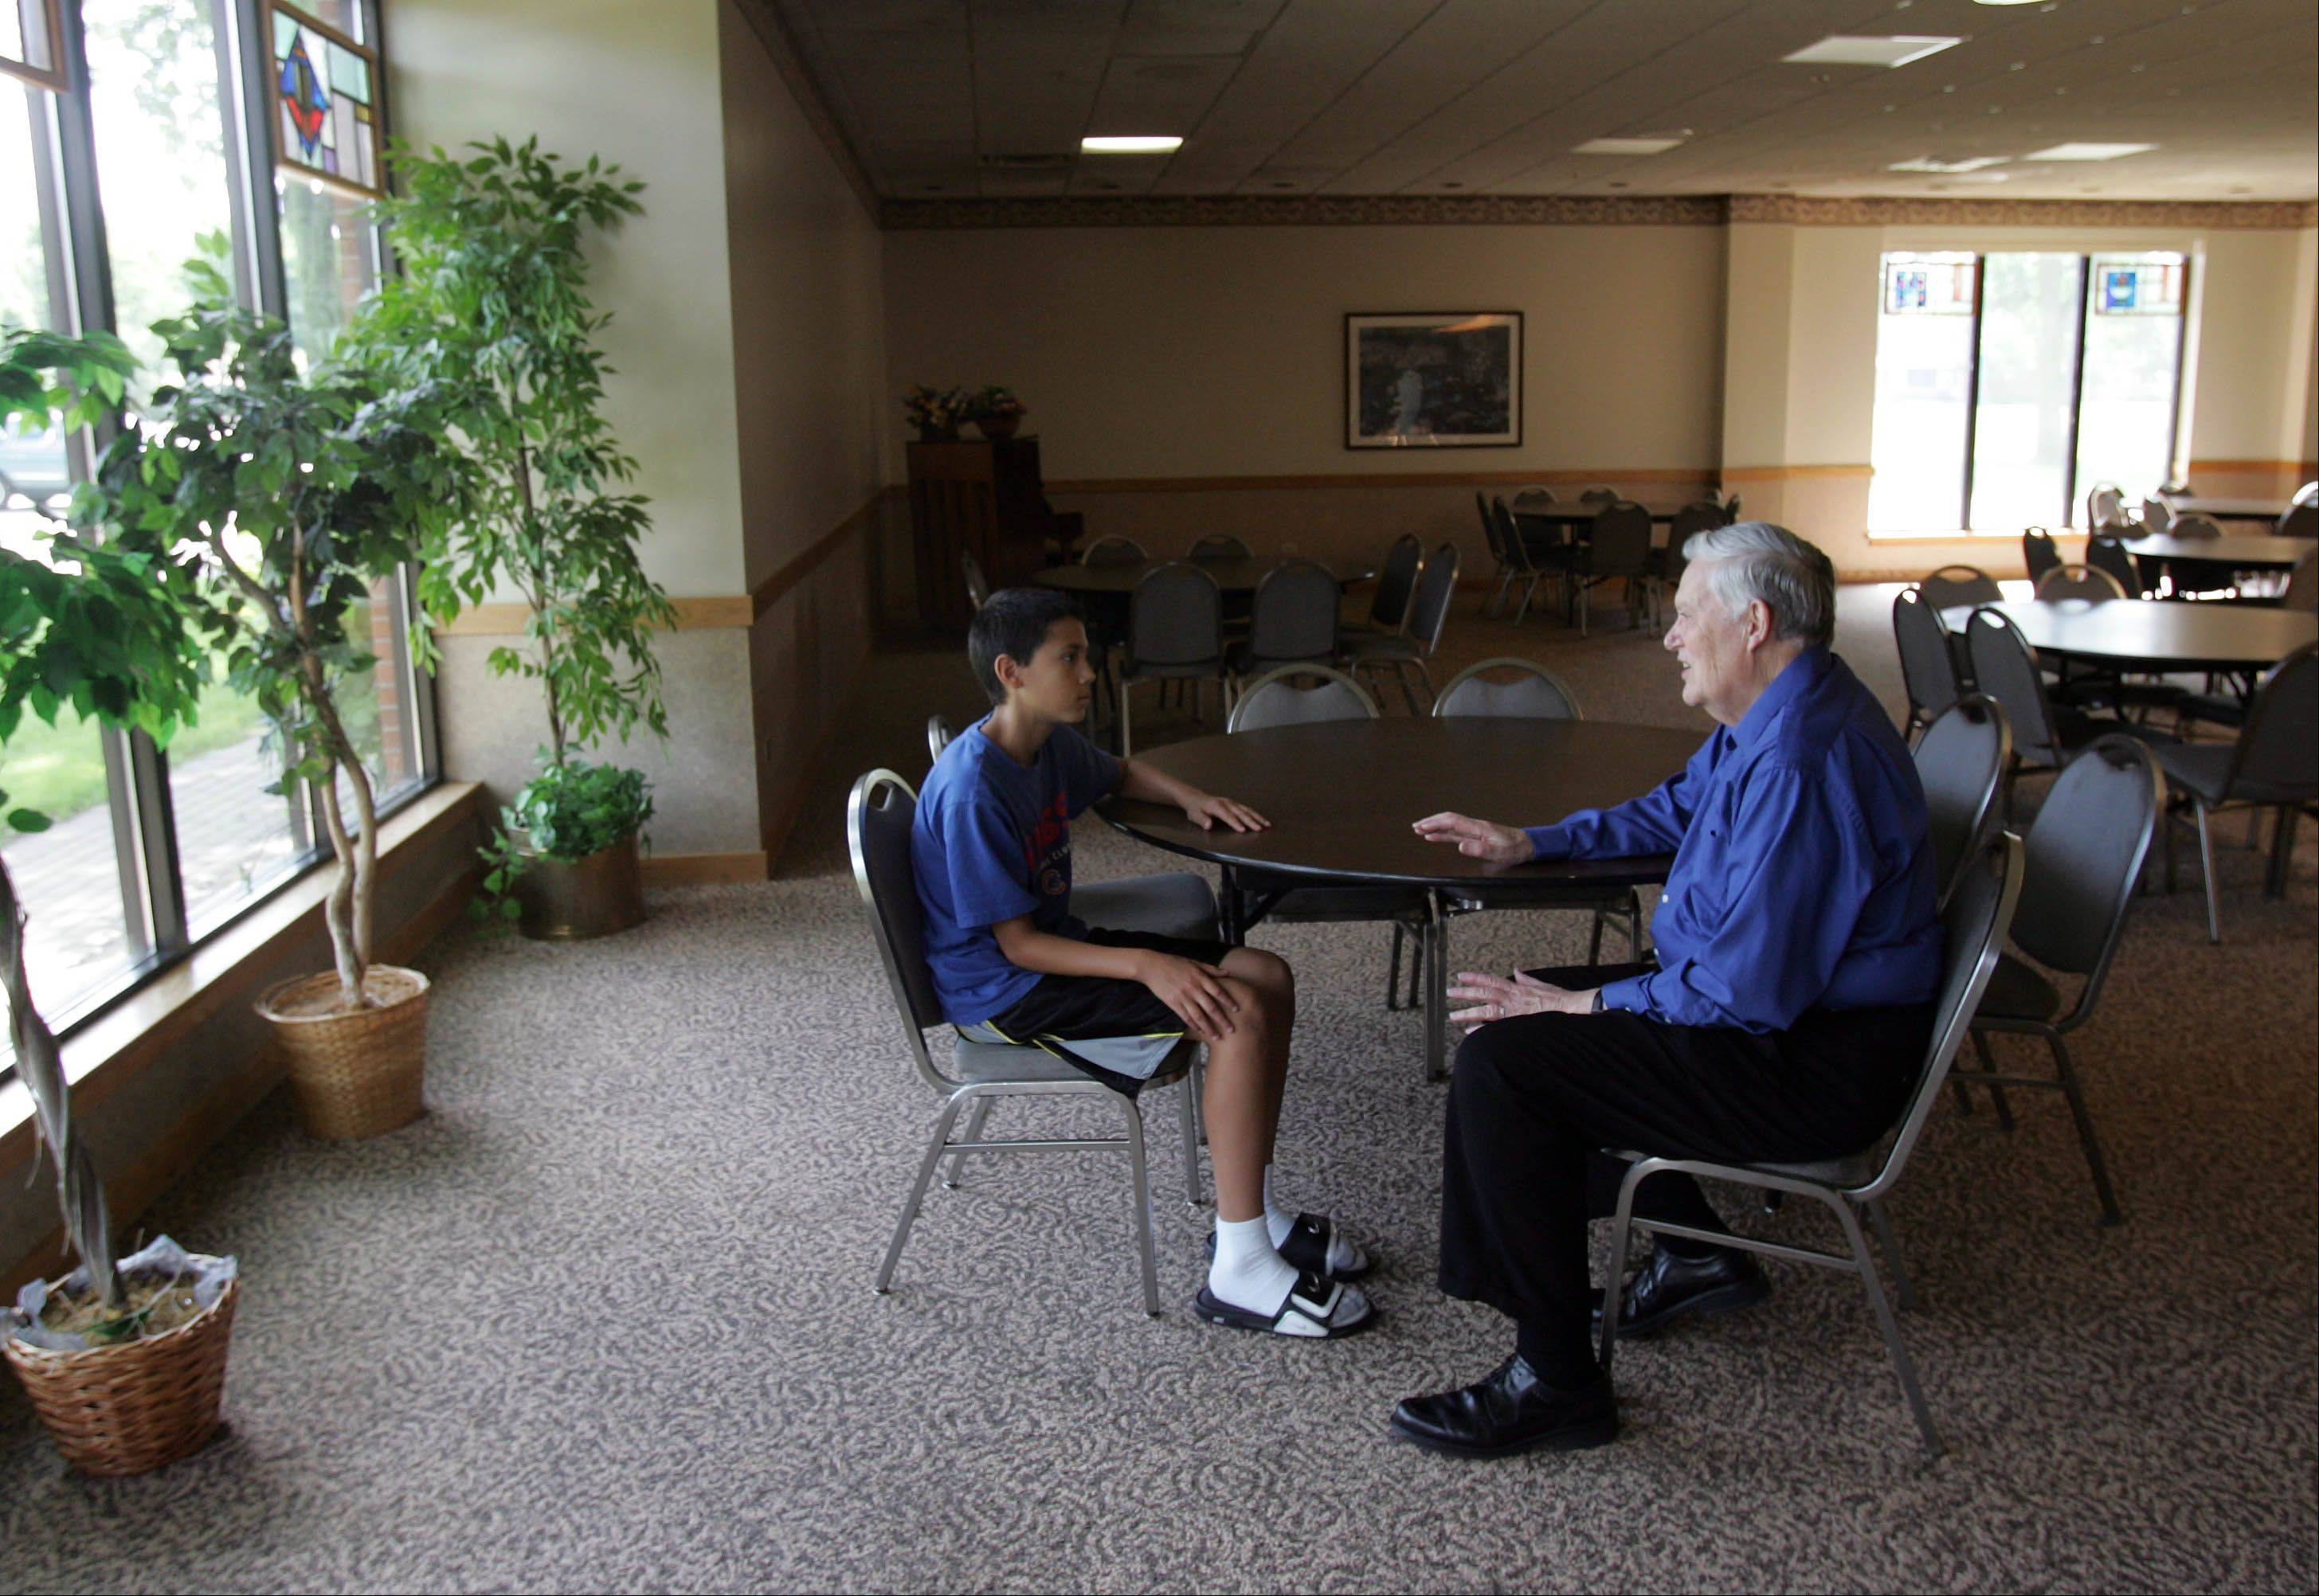 Ken Black, right, and Joey Sandoval have some private time together. During the school year, mentors meet one-on-one with students during one lunch period per week.